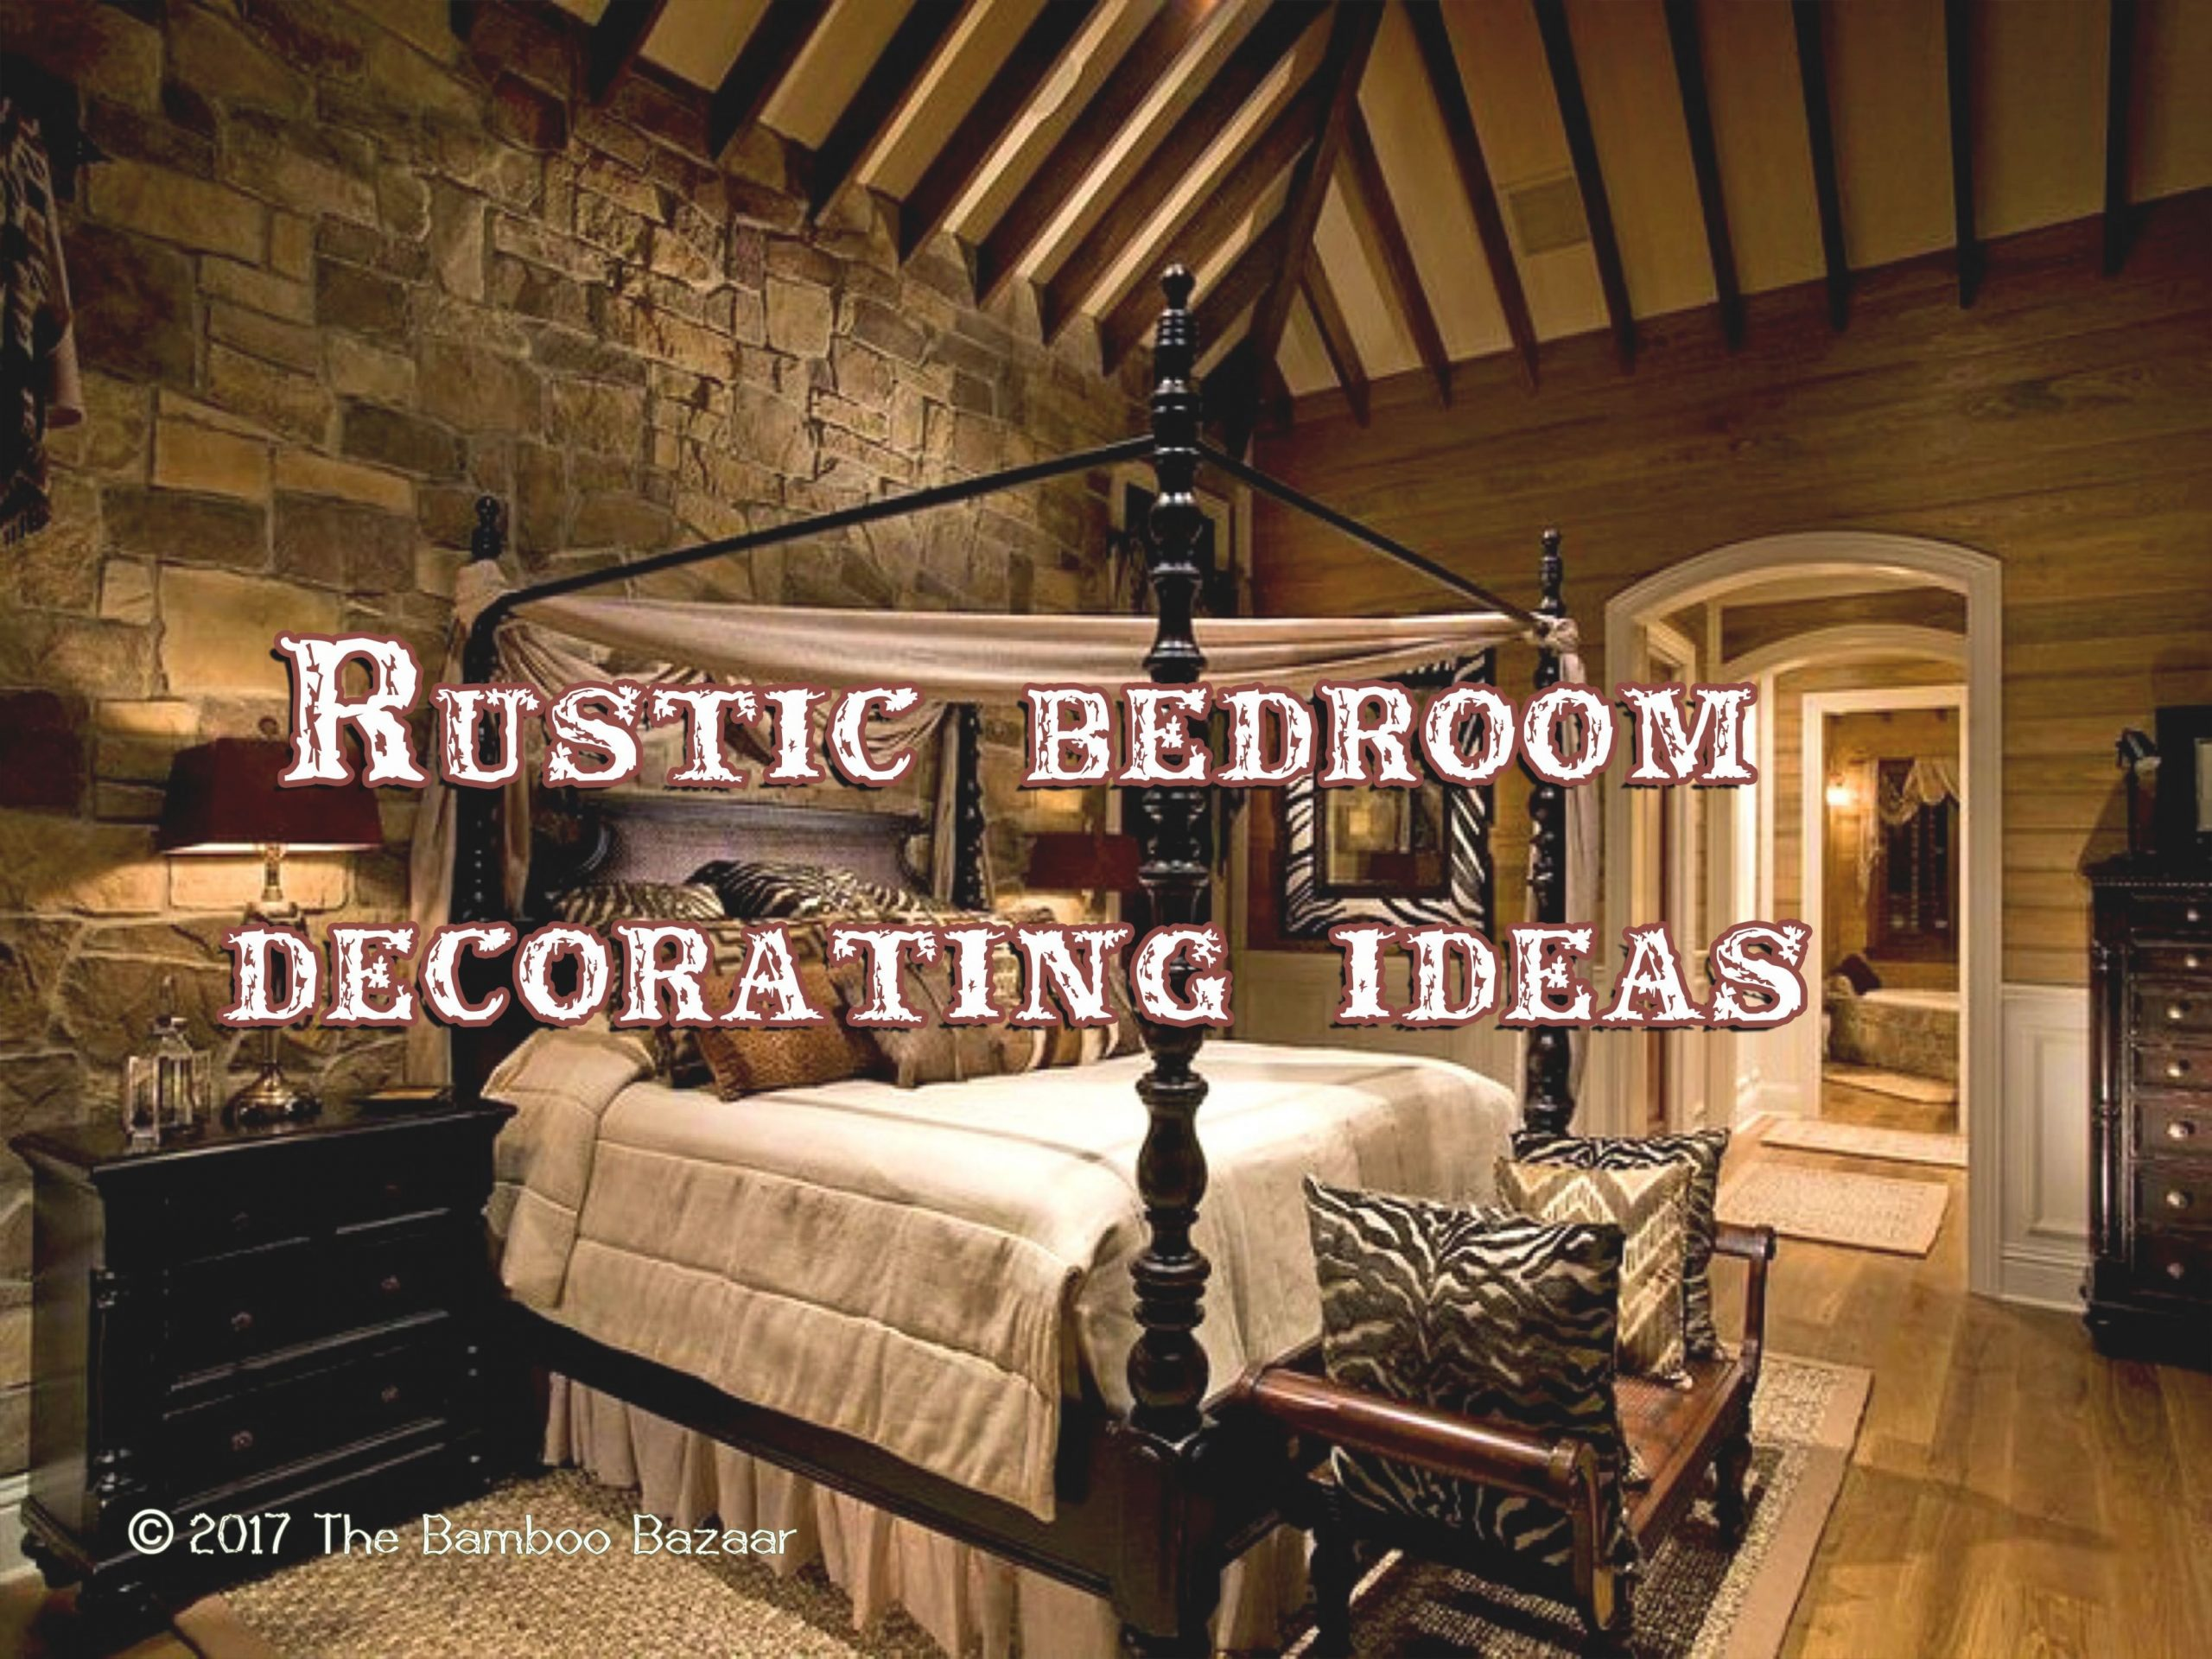 Rustic Bedroom Decorating Ideas, A Guide To Inspire And Remodel within Unique Rustic Bedroom Decorating Ideas